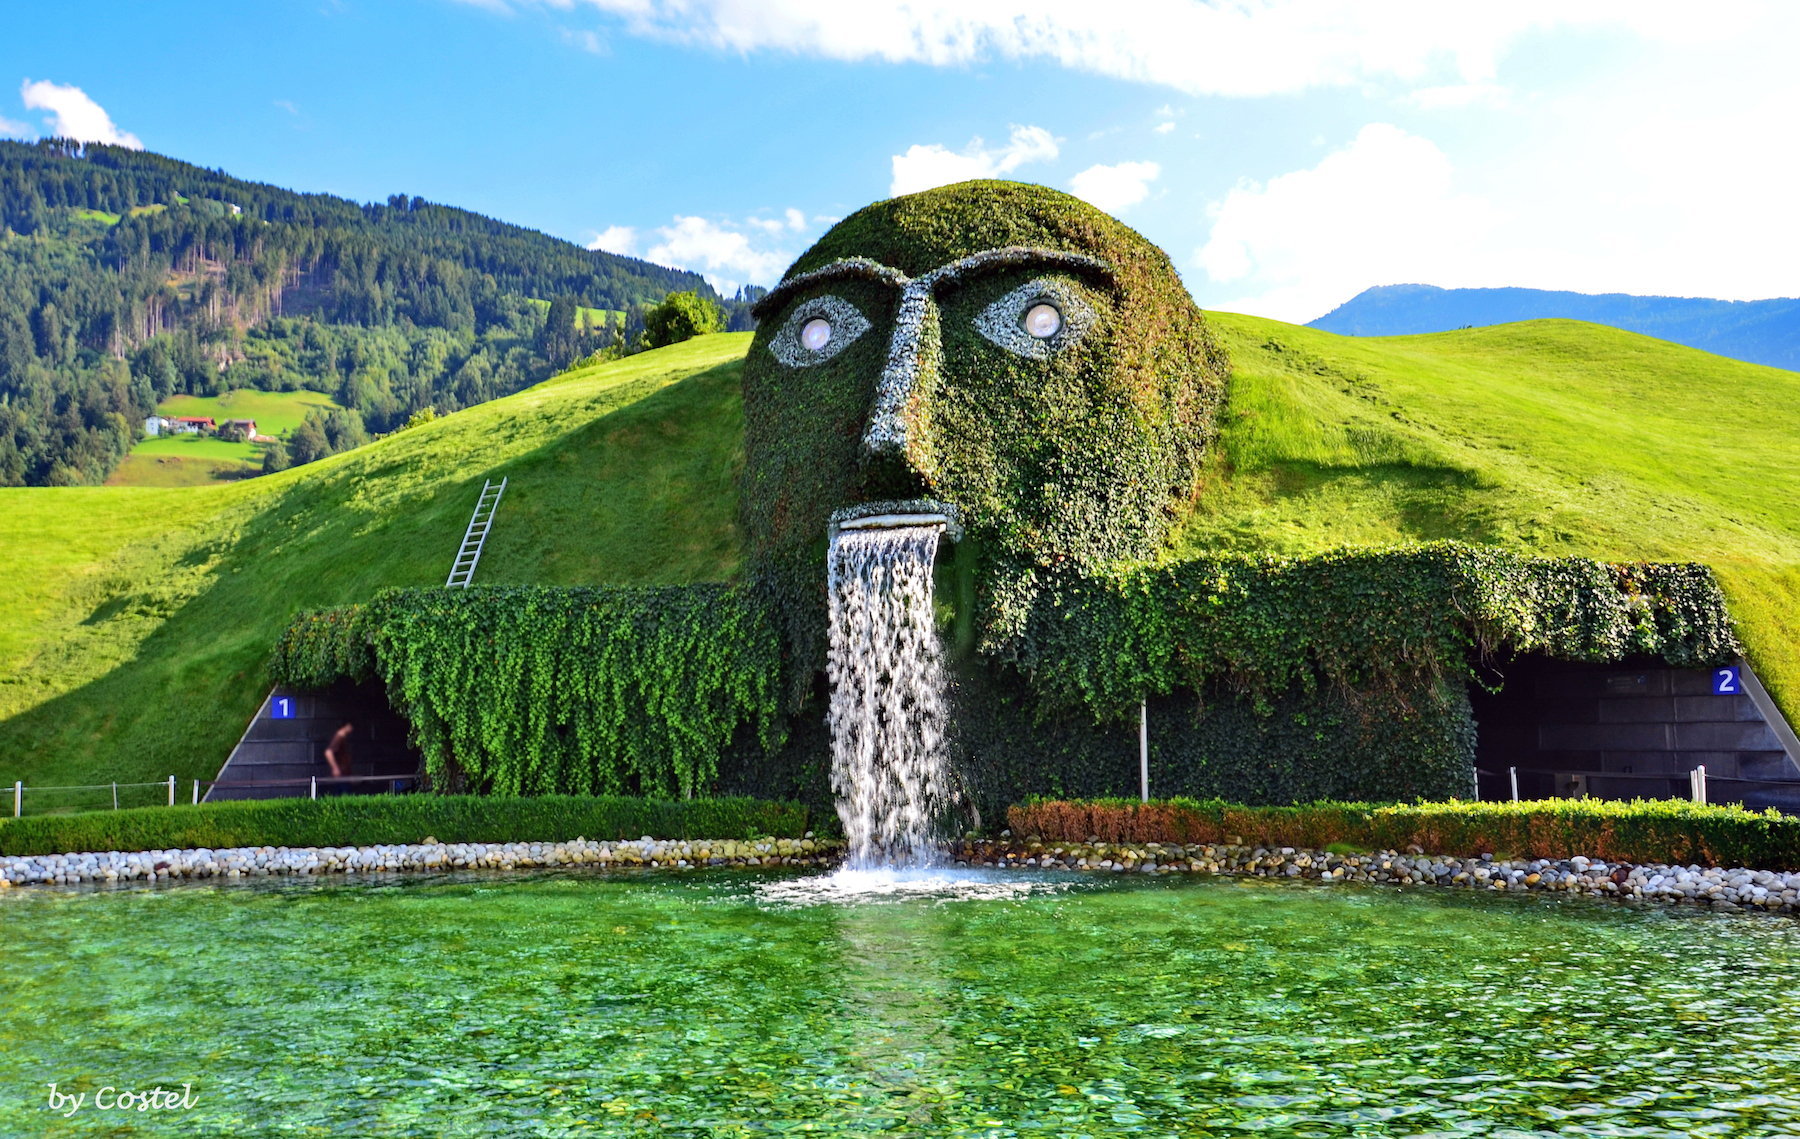 World's best fountains: 15 of the most spectacular   CNN Travel